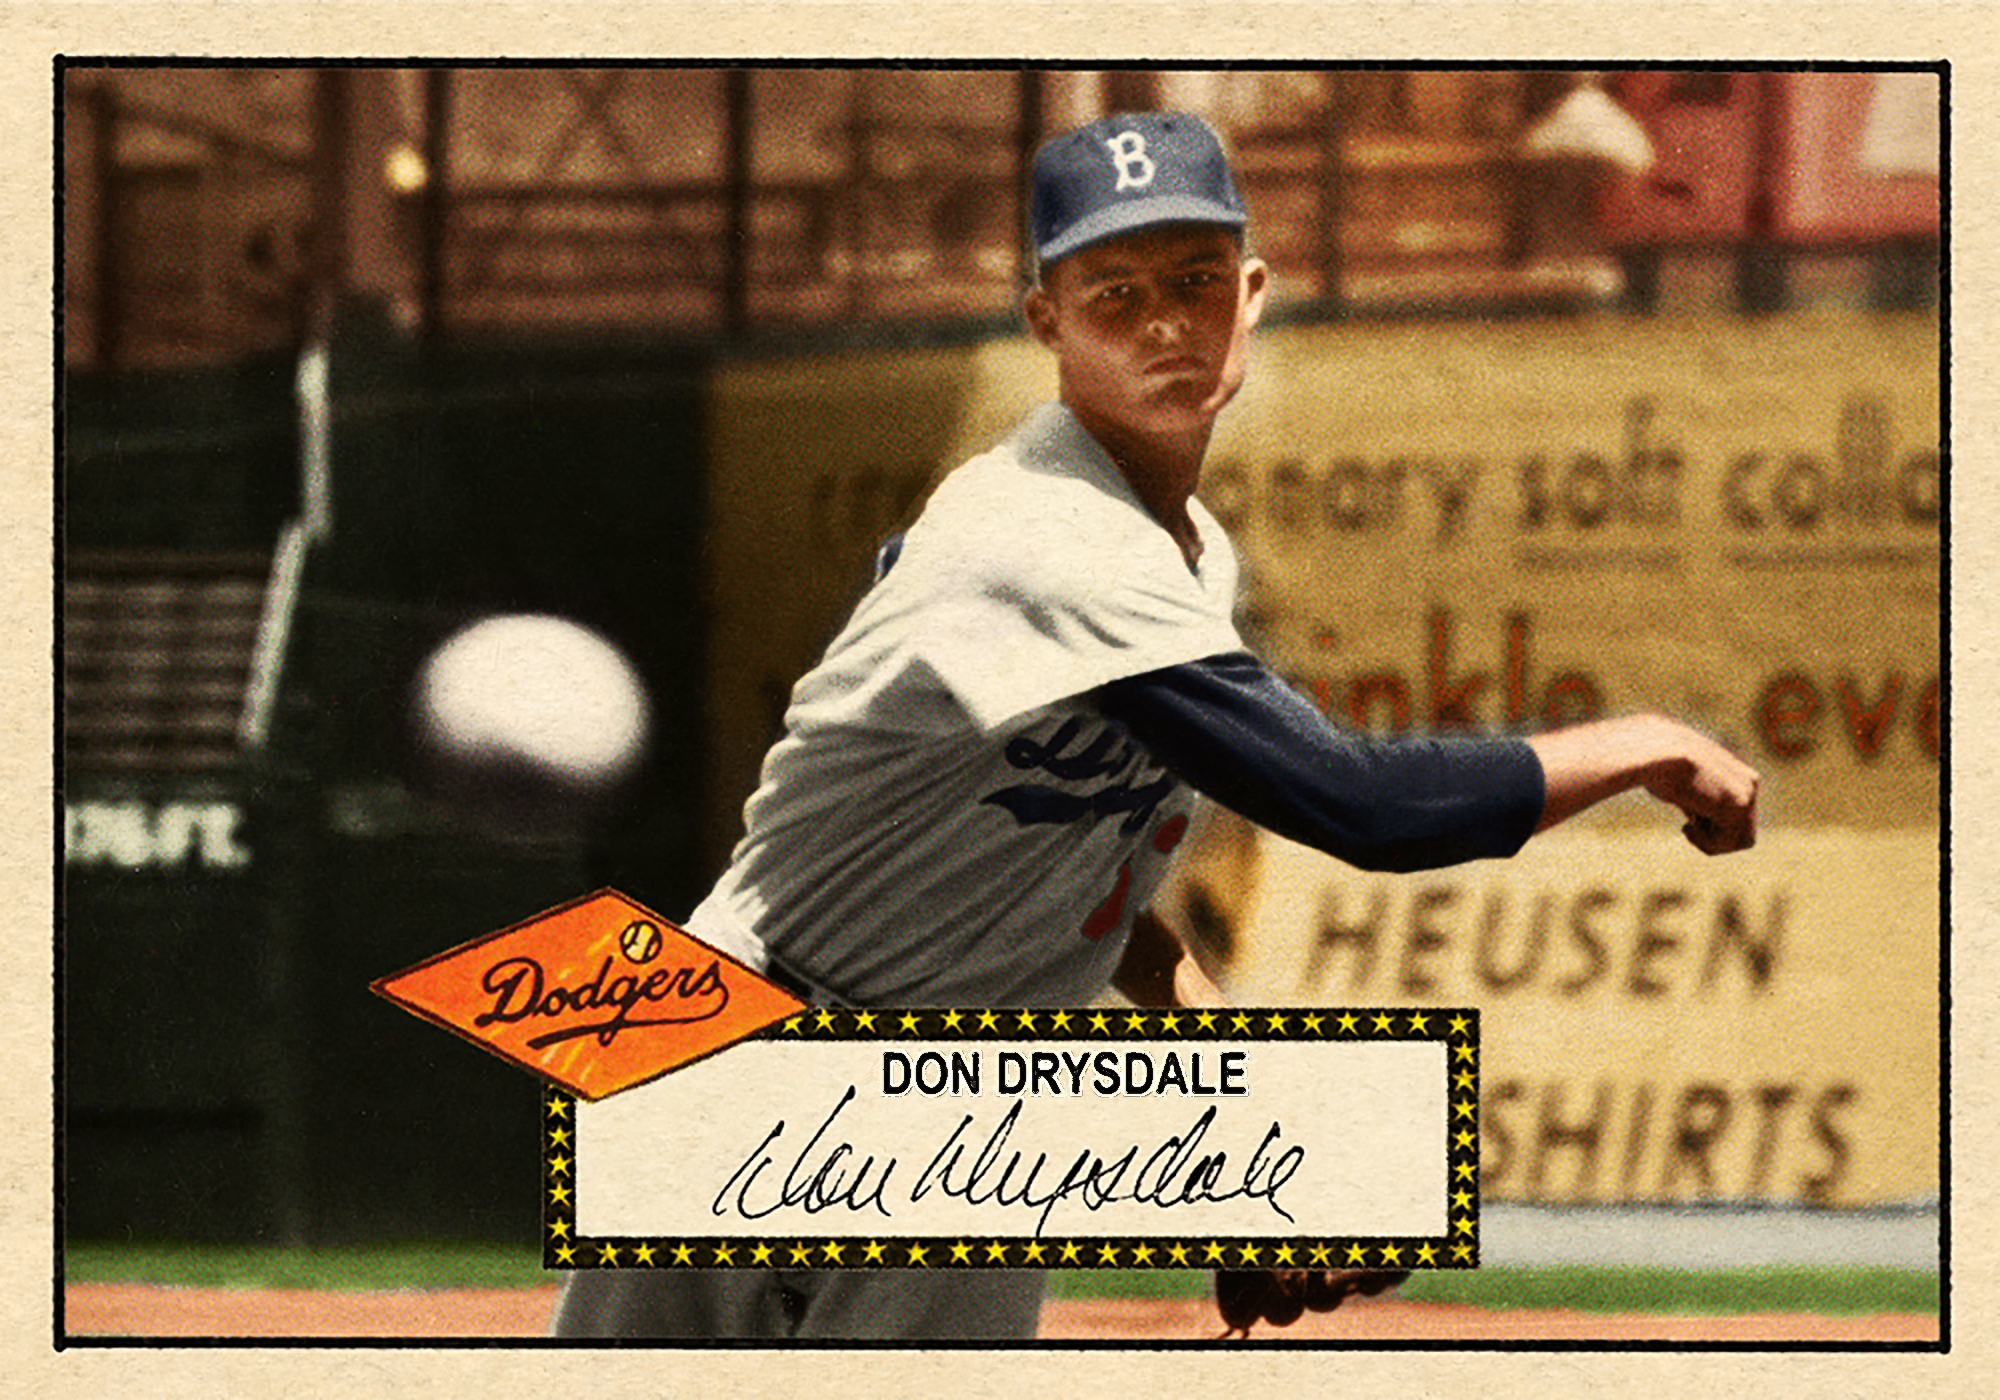 1952 Series #255DON DRYSDALE - This high-number won't list again for quite awhile. One of our favorite cards ever offered. An action shot of a baby Don's whip-like arm in old Ebbets Field. Gently hand colored and filtered, then lightly 'dodged' to highlight his features, this is a true wonder card.SOLD FOR 236.03 USD, December 2017